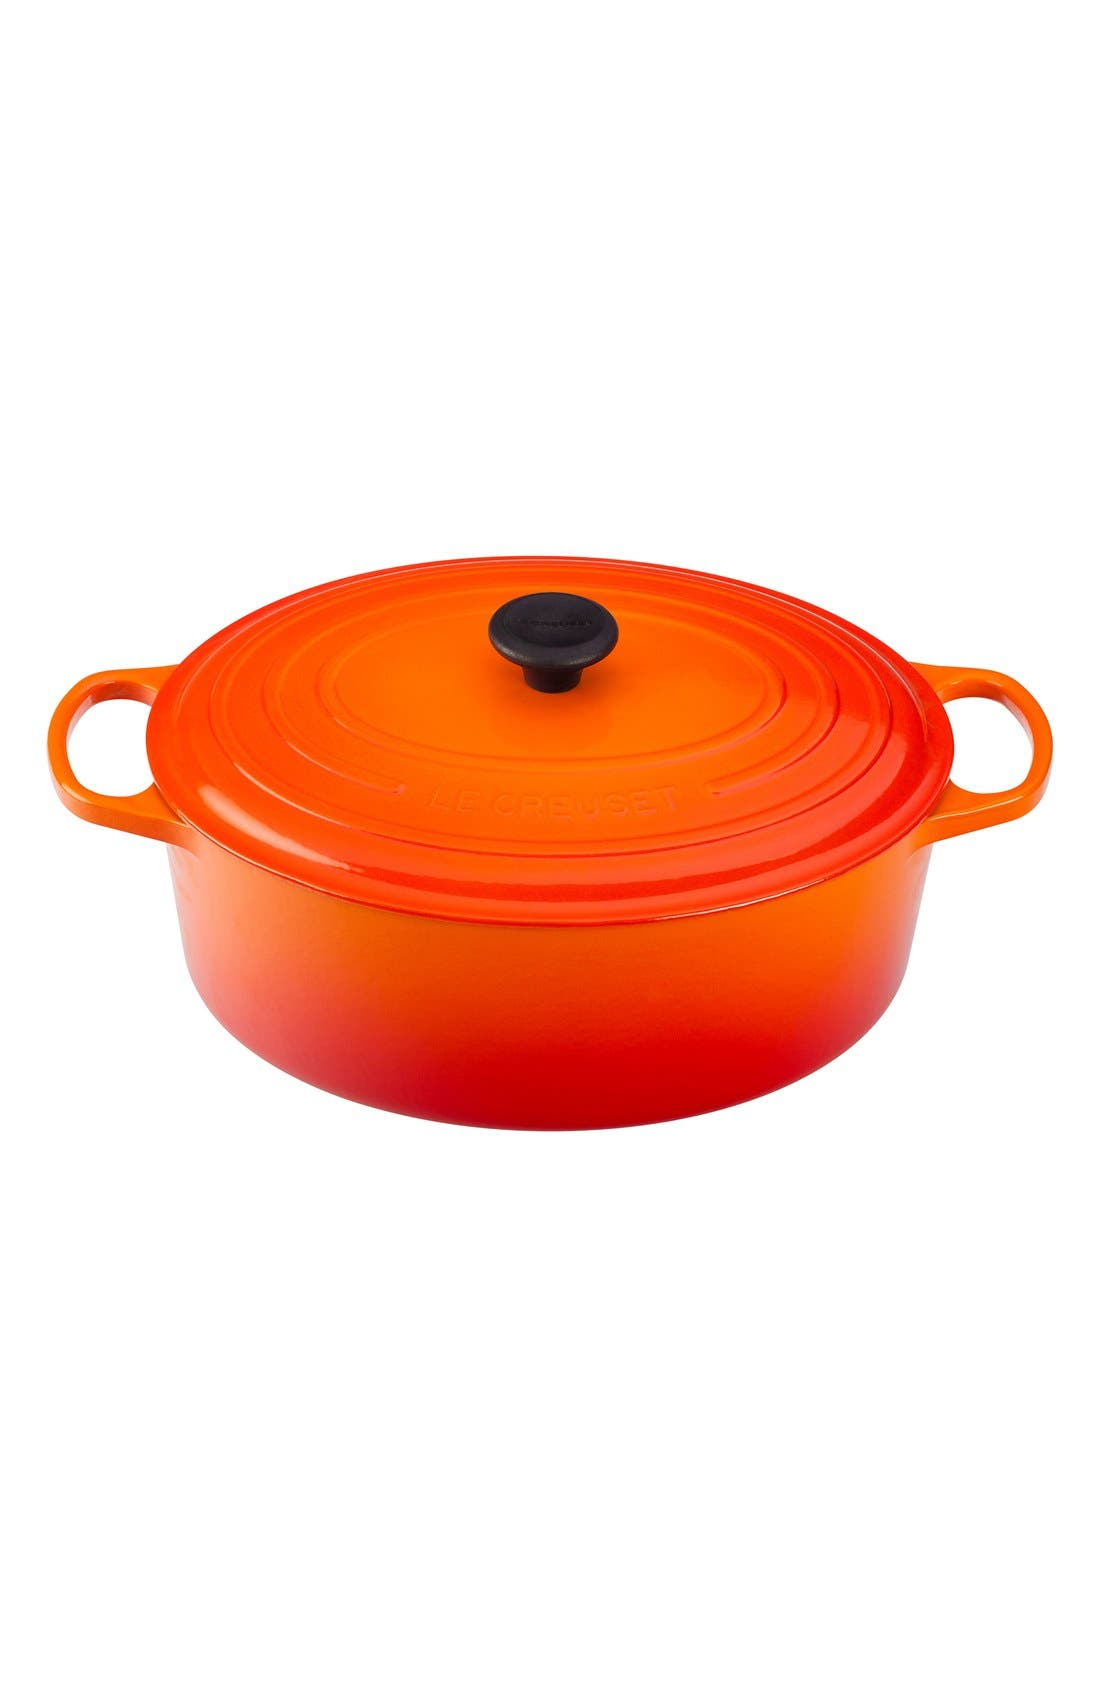 Le Creuset Signature 9 1/2 Quart Oval Enamel Cast Iron French/Dutch Oven